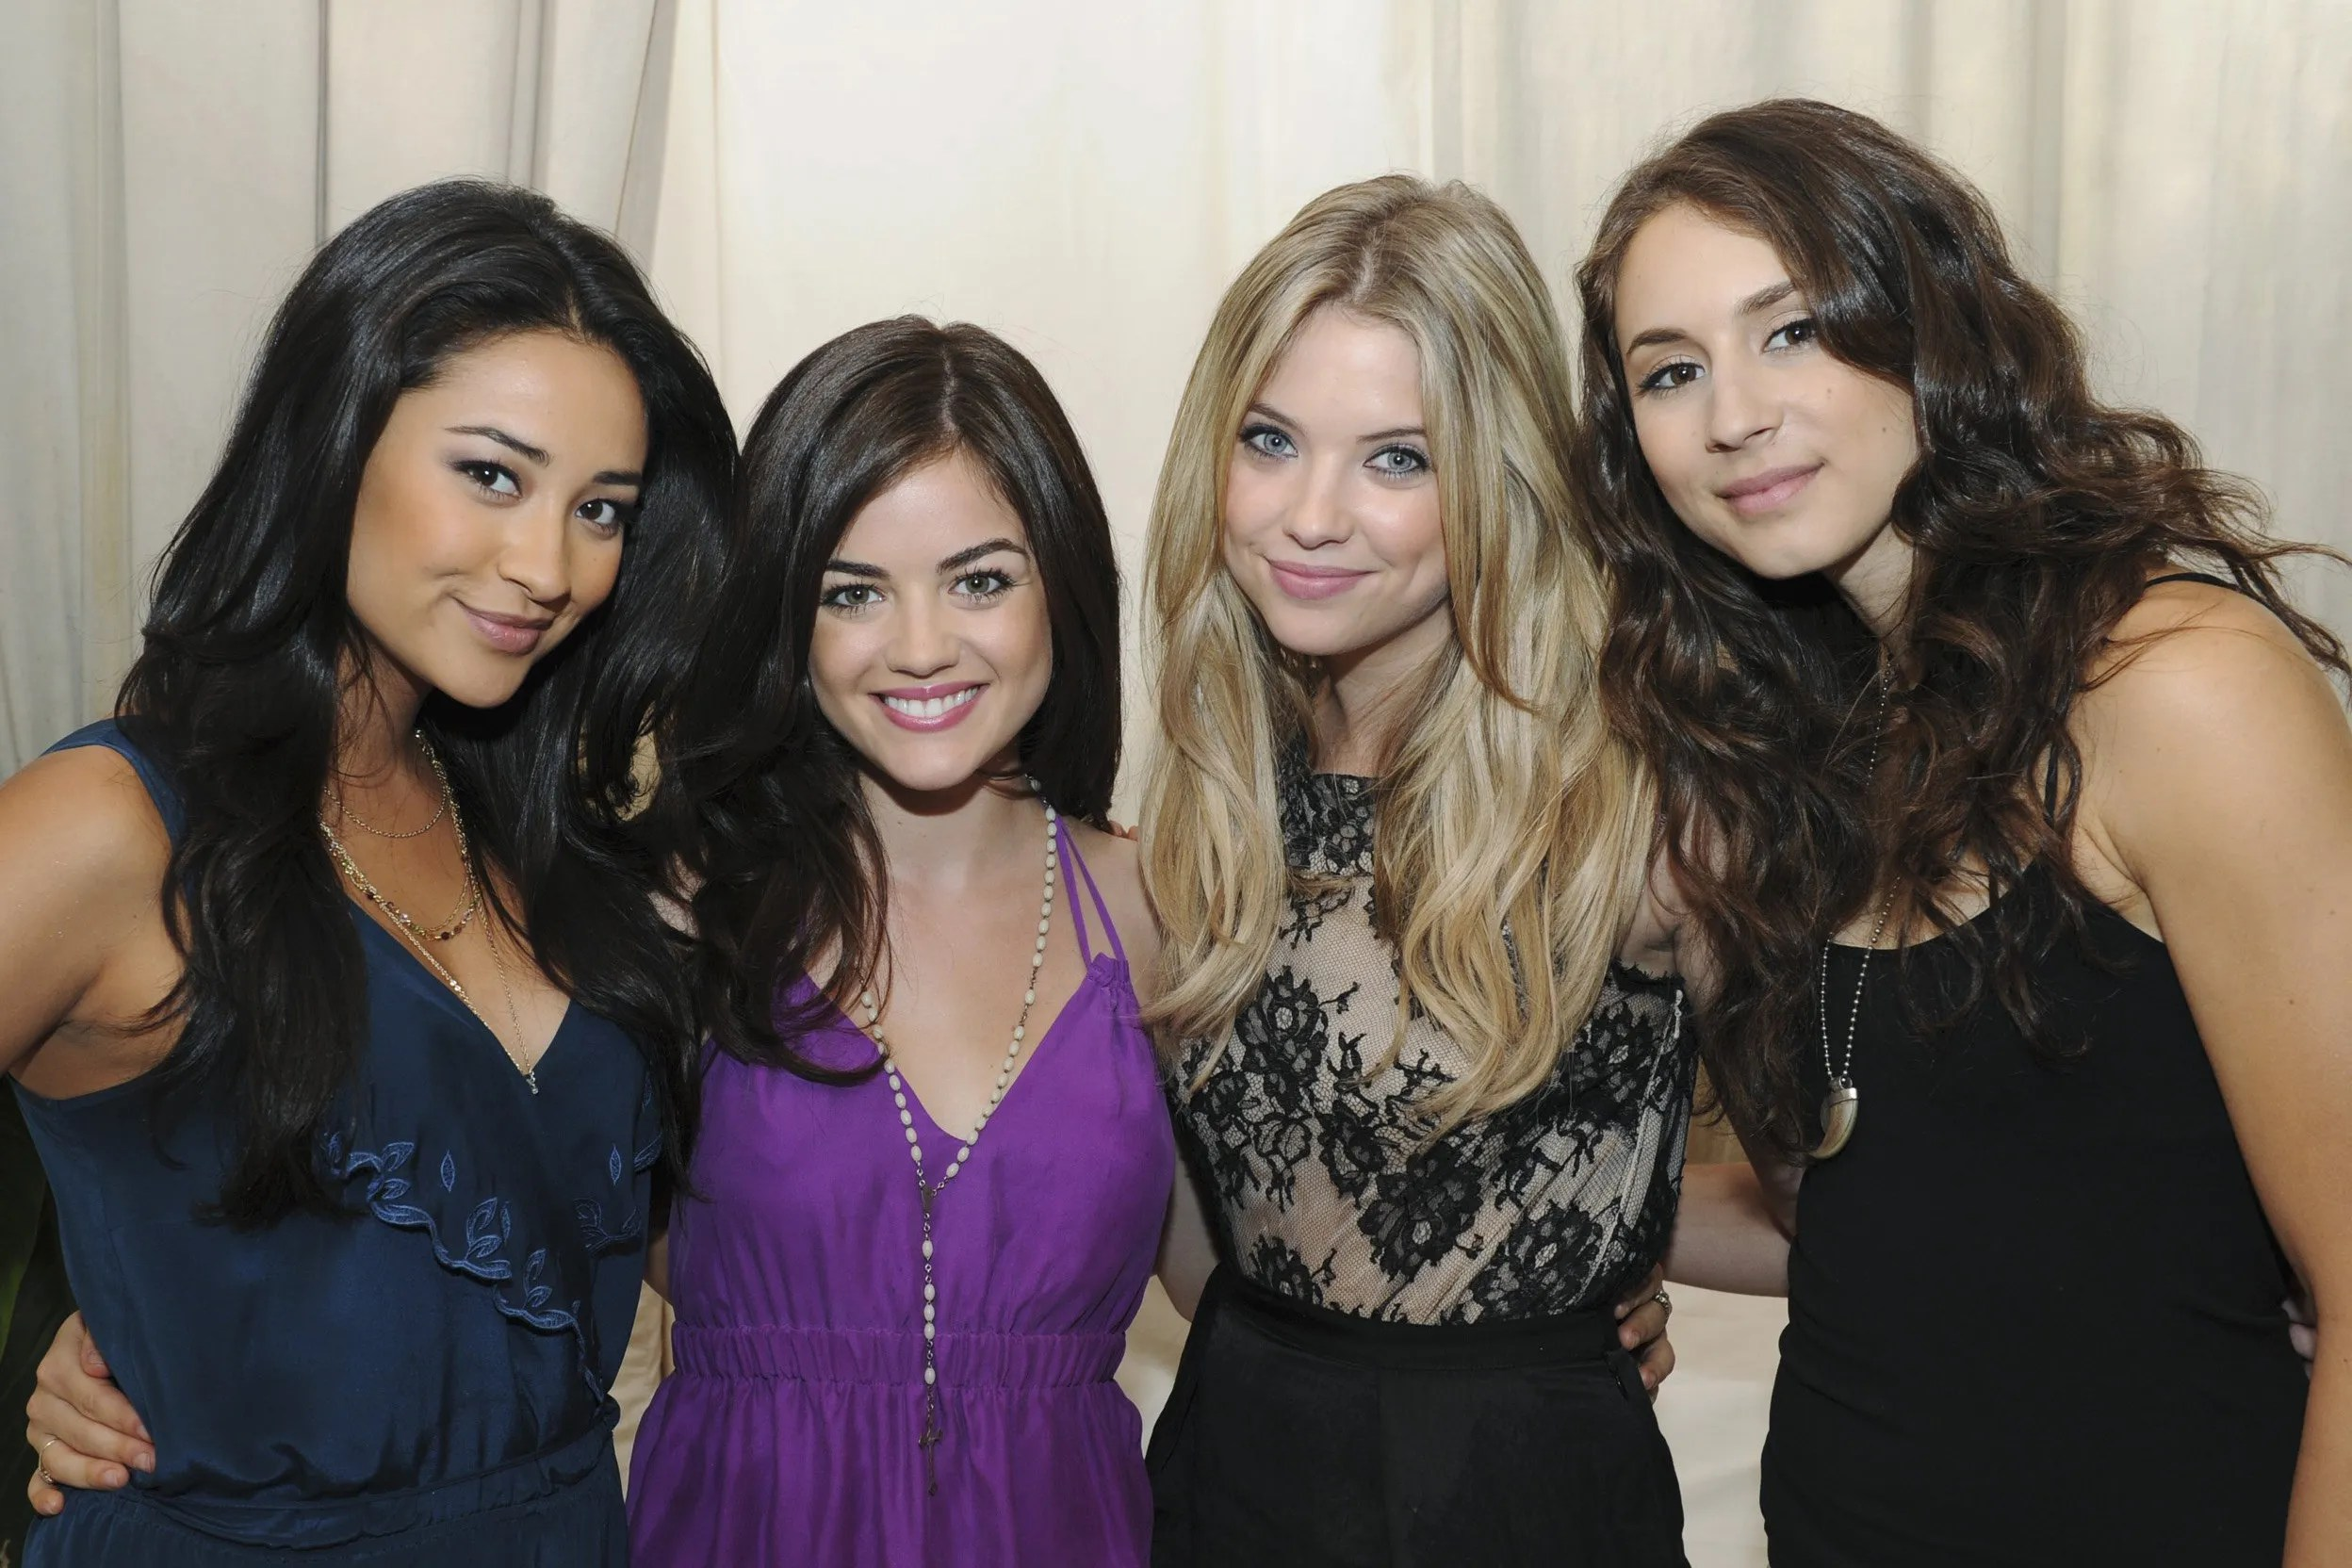 Cat In Fall Wallpaper The Beauty Evolution Of The Pretty Little Liars Cast